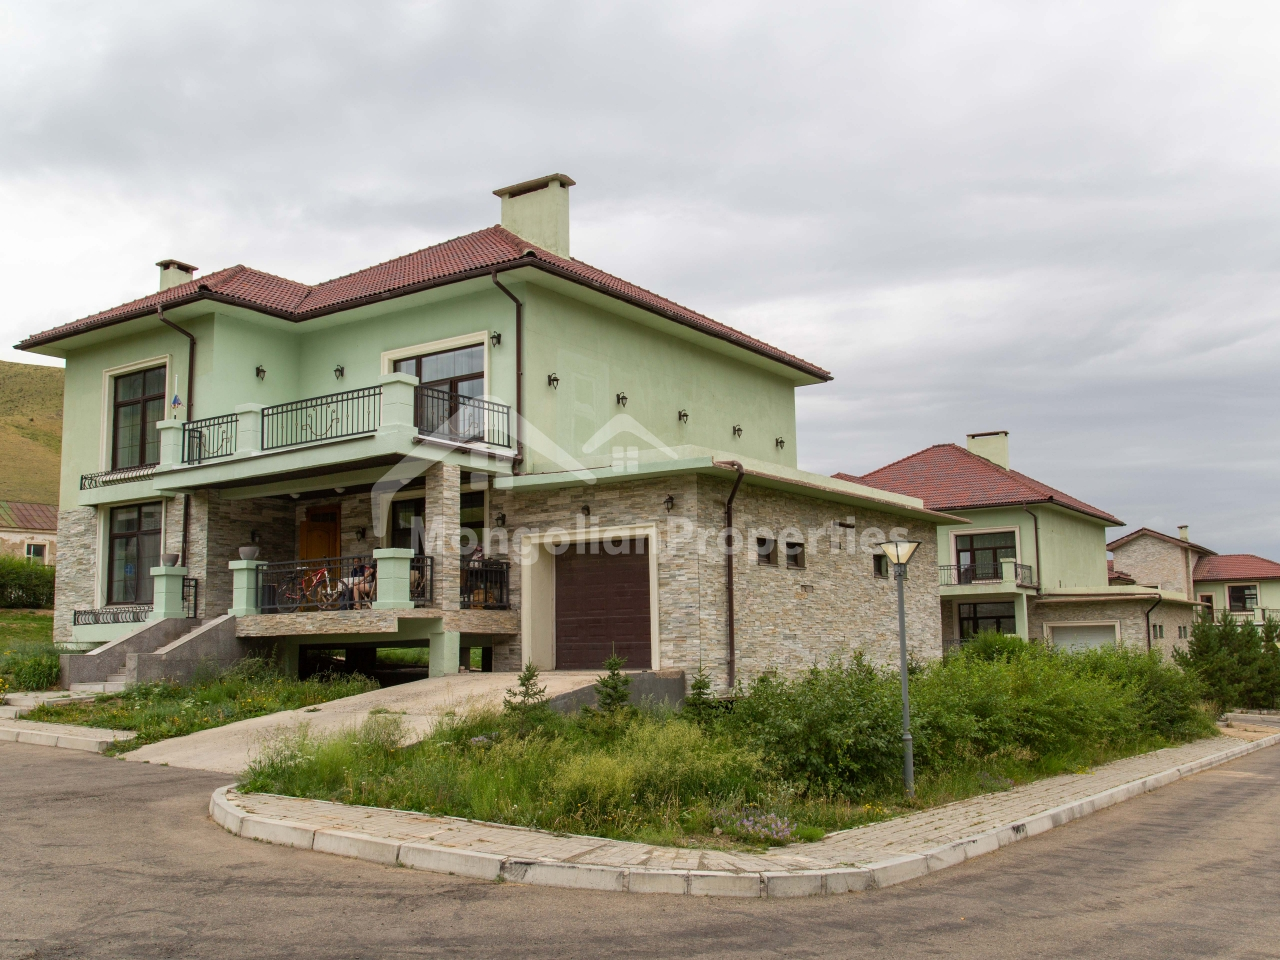 FOR SALE: Beautiful single house at Baga Tenger Valley